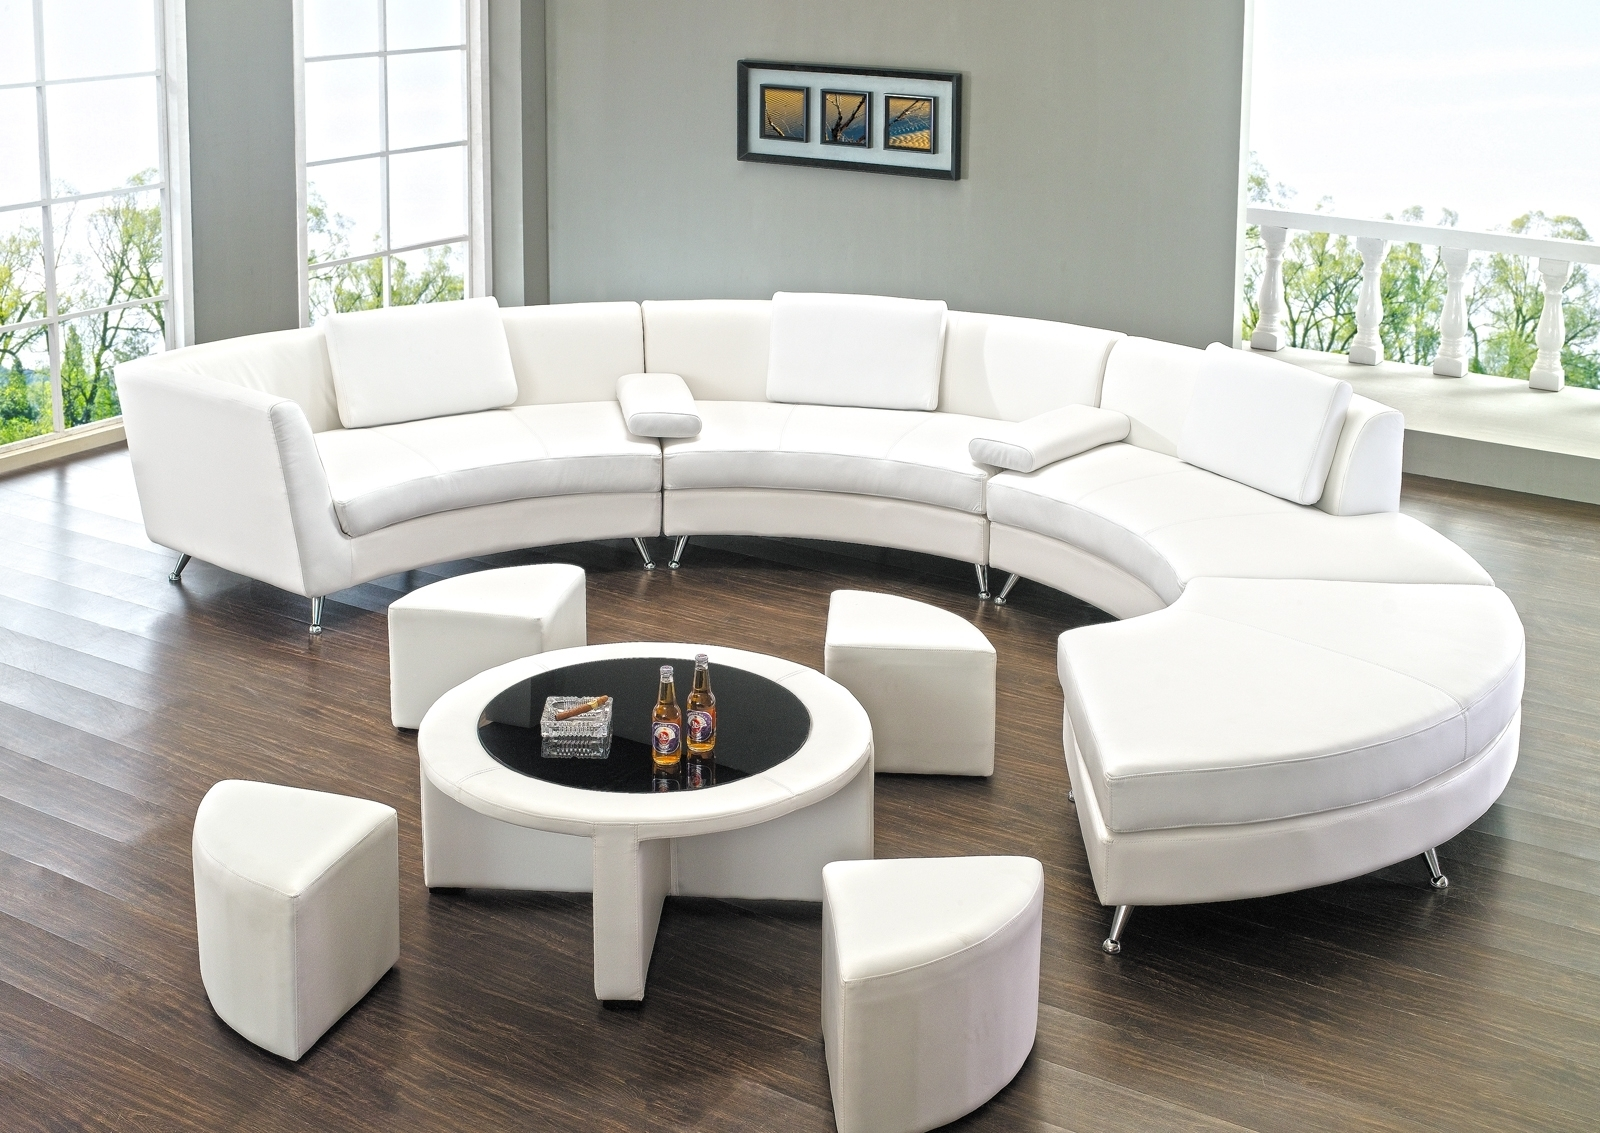 Round Sectional Sofa Has One Of The Best Kind Of Other Is Sectionals Intended For Circular Sectional Sofas (Image 7 of 10)